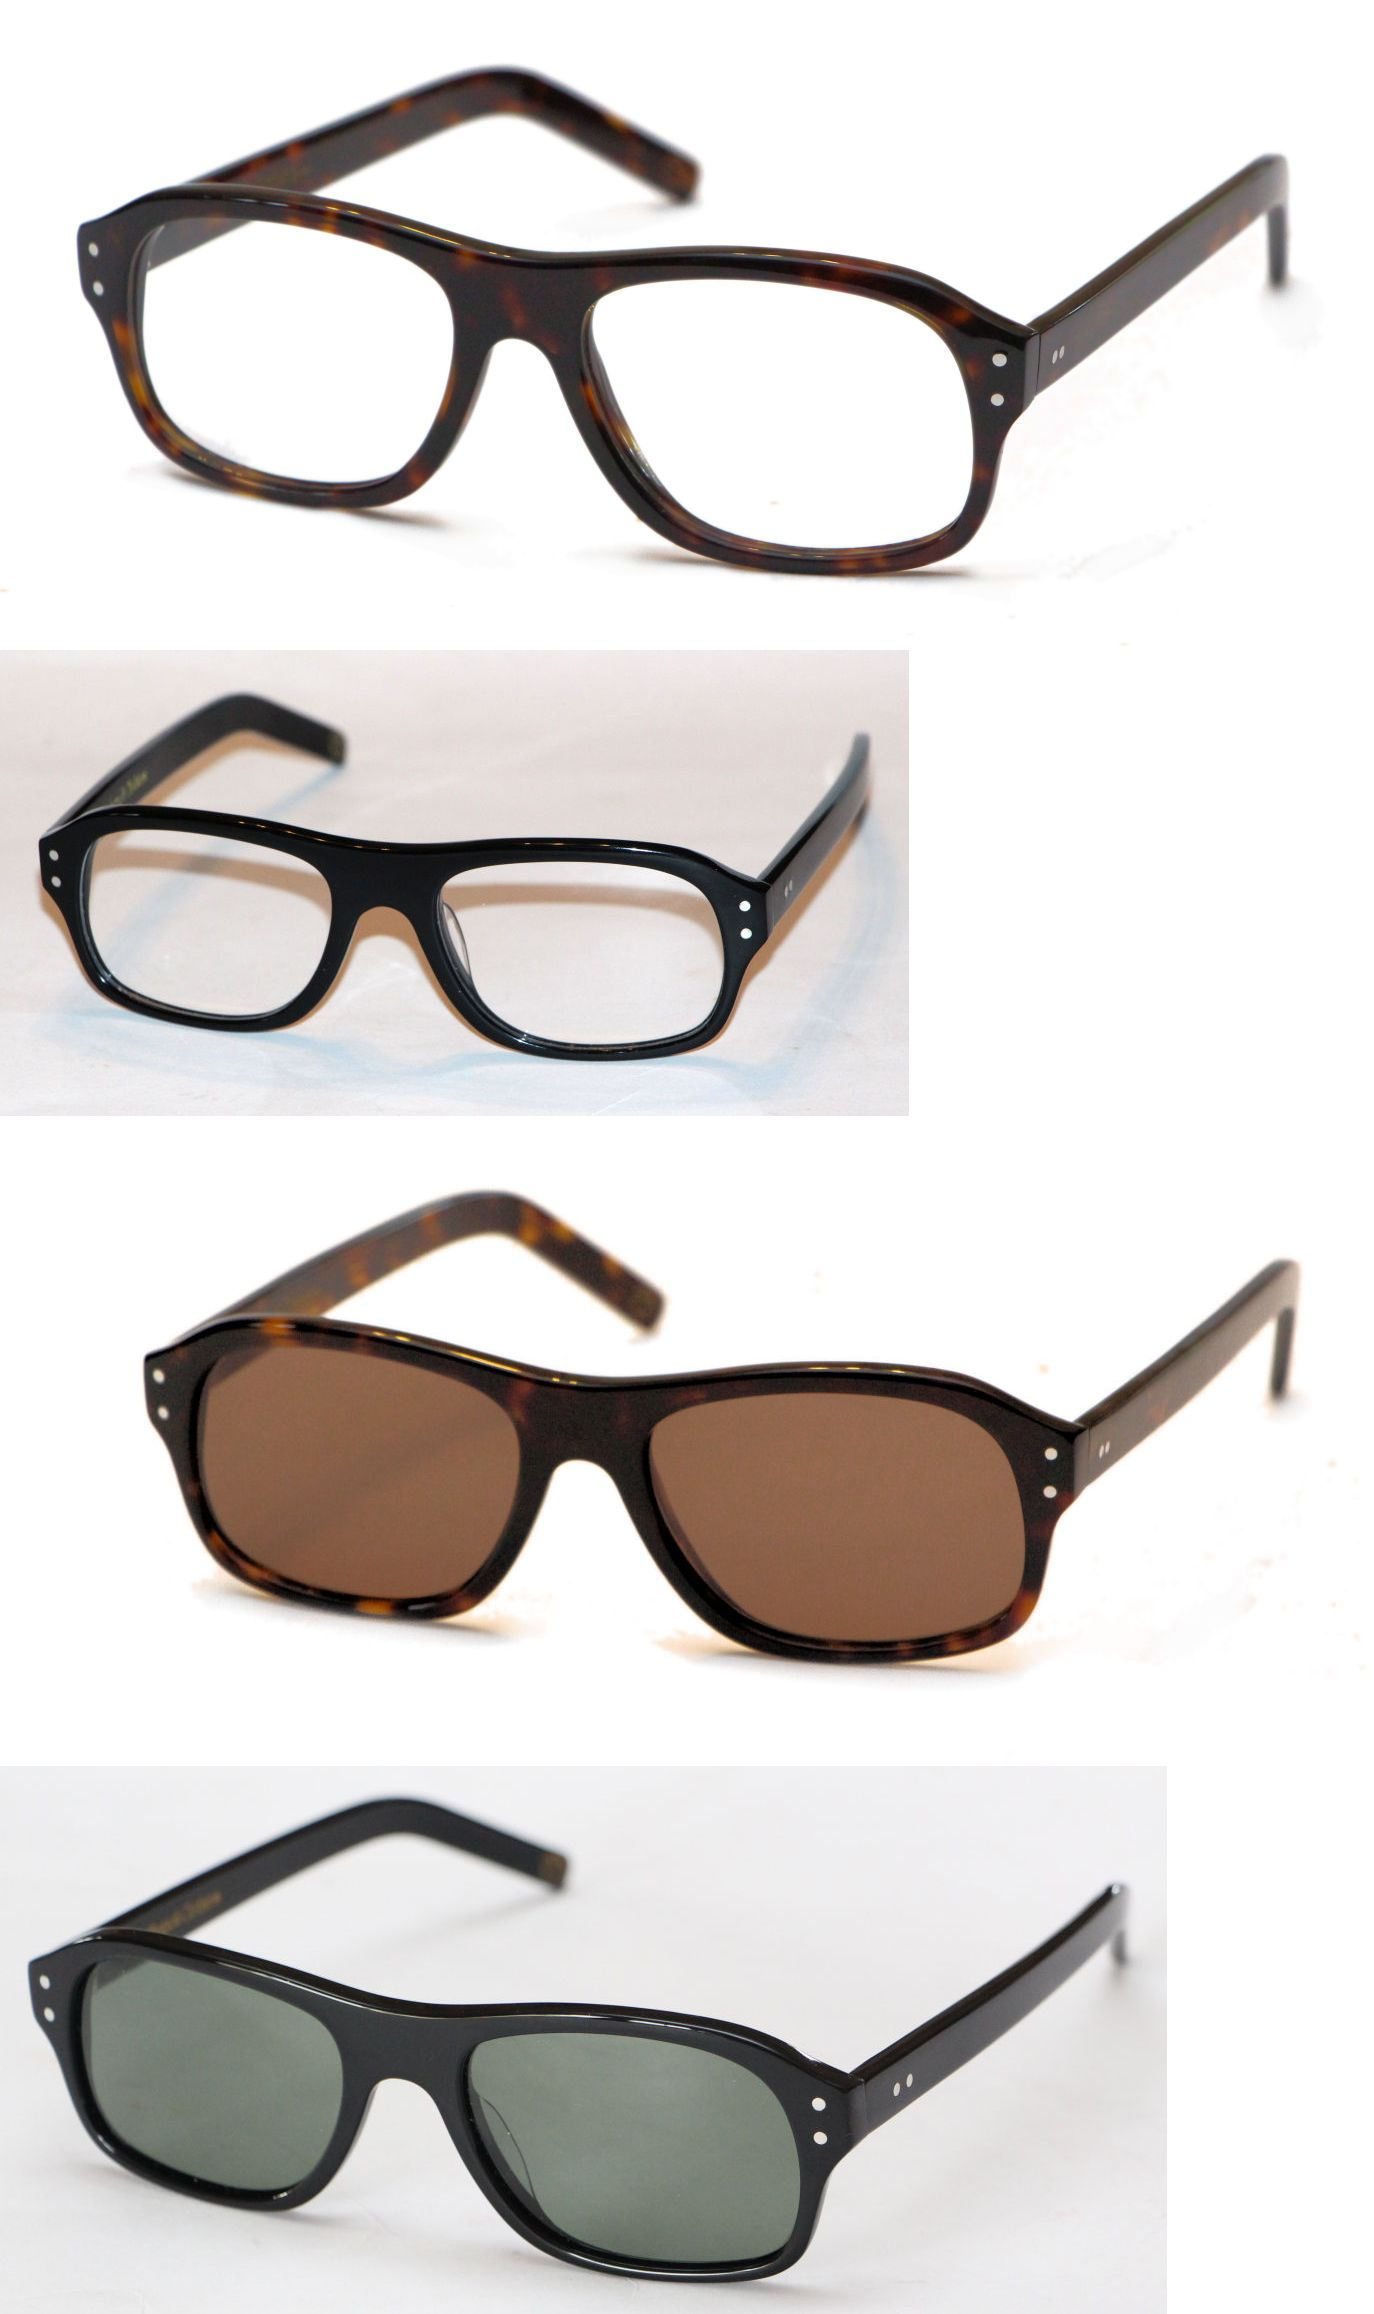 17454b9f67 Fashion Eyewear Clear Glasses 179240  Kingsman Glasses By Magnoli Clothiers  - Eyeglasses And Sunglasses -  BUY IT NOW ONLY   73 on eBay!